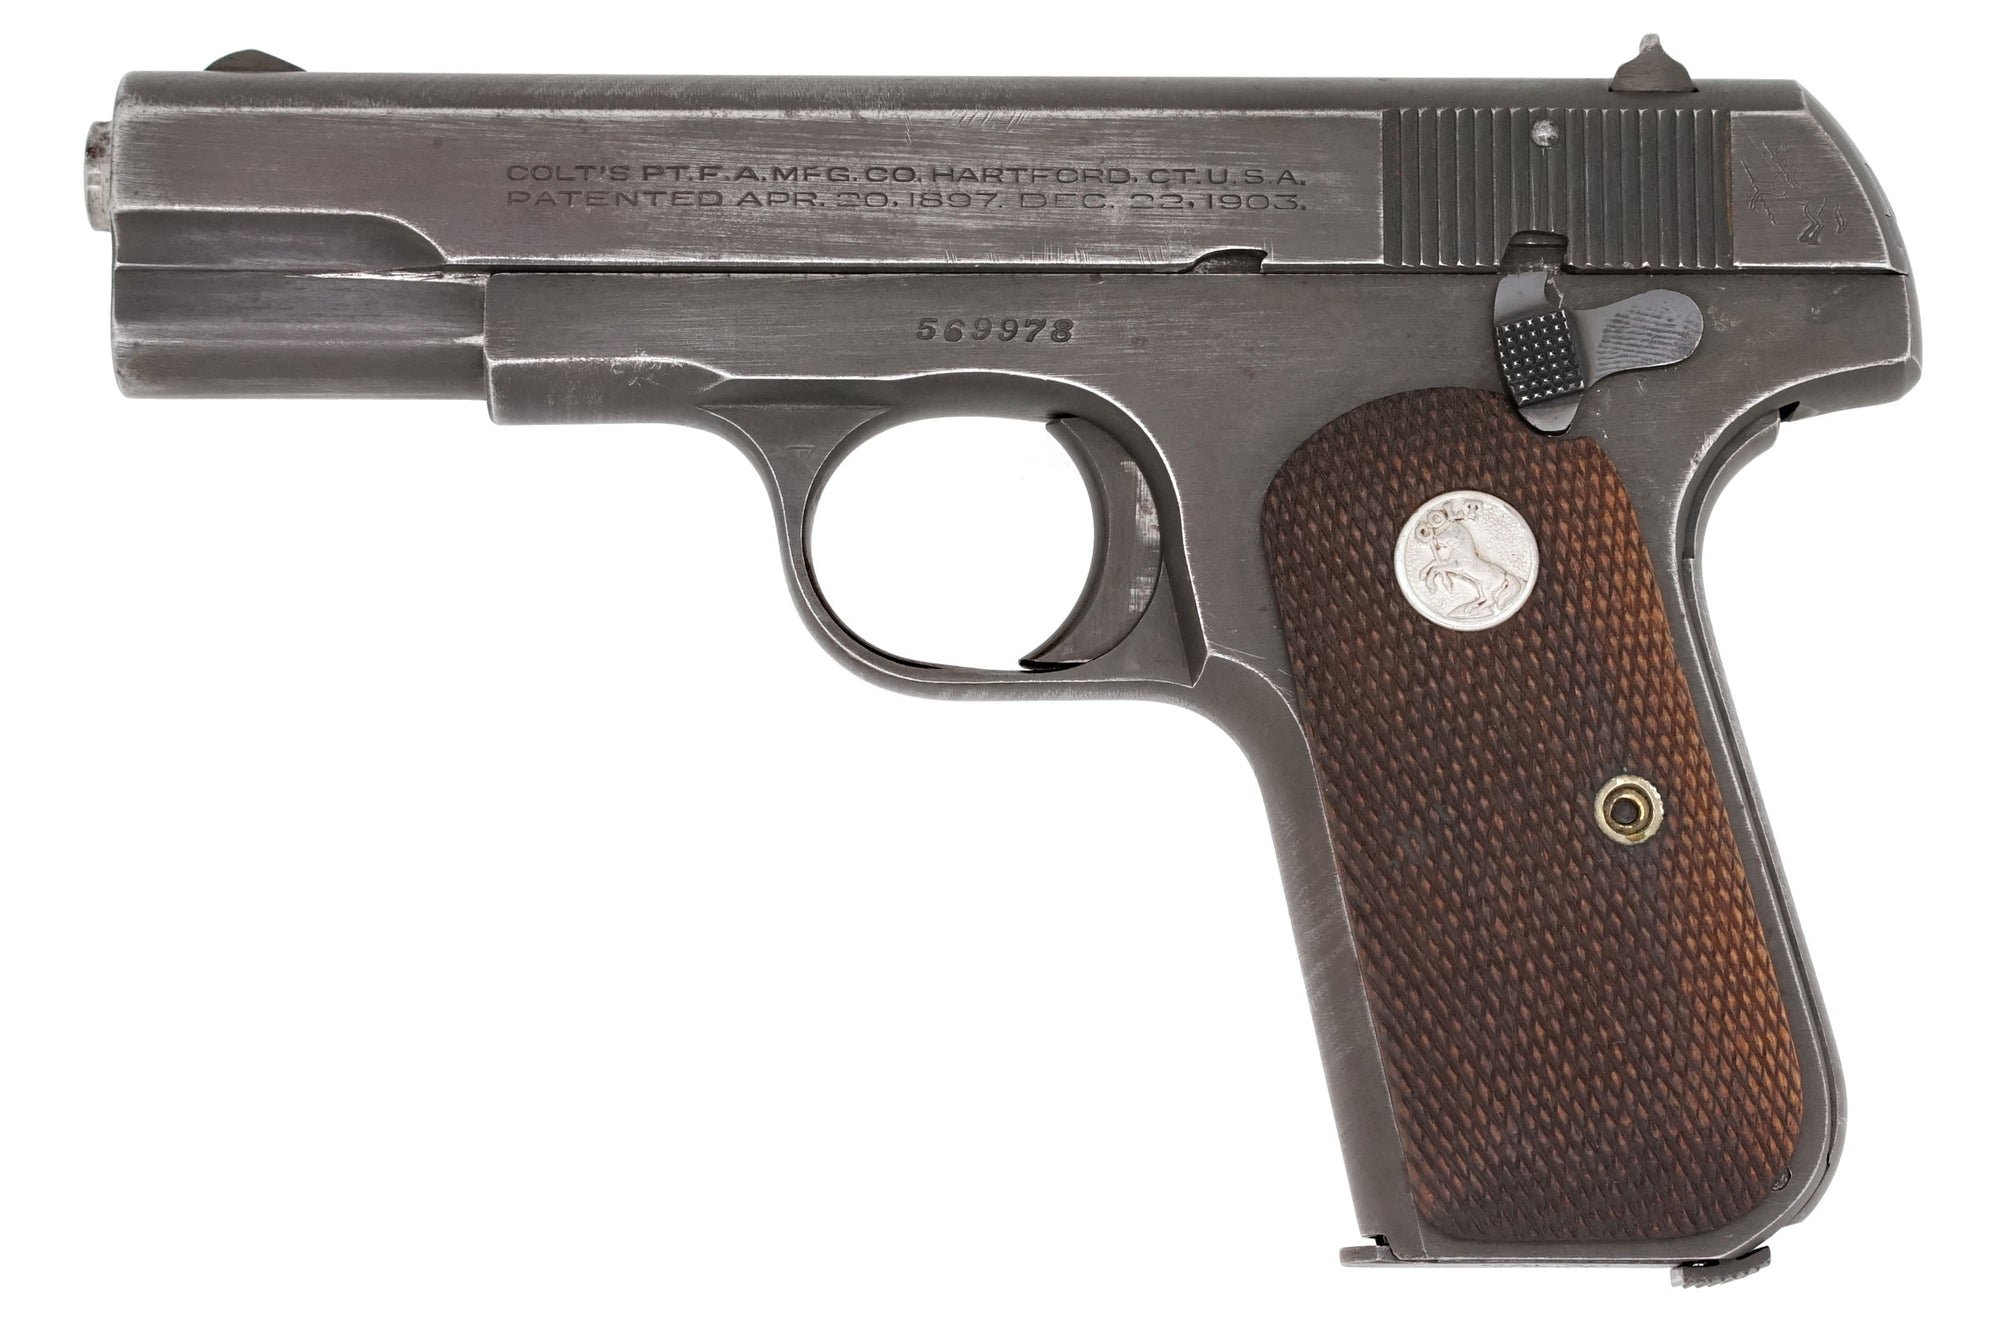 Colt 1903 Pocket Hammerless 32ACP SN:569978 MFG:1945 - MIS